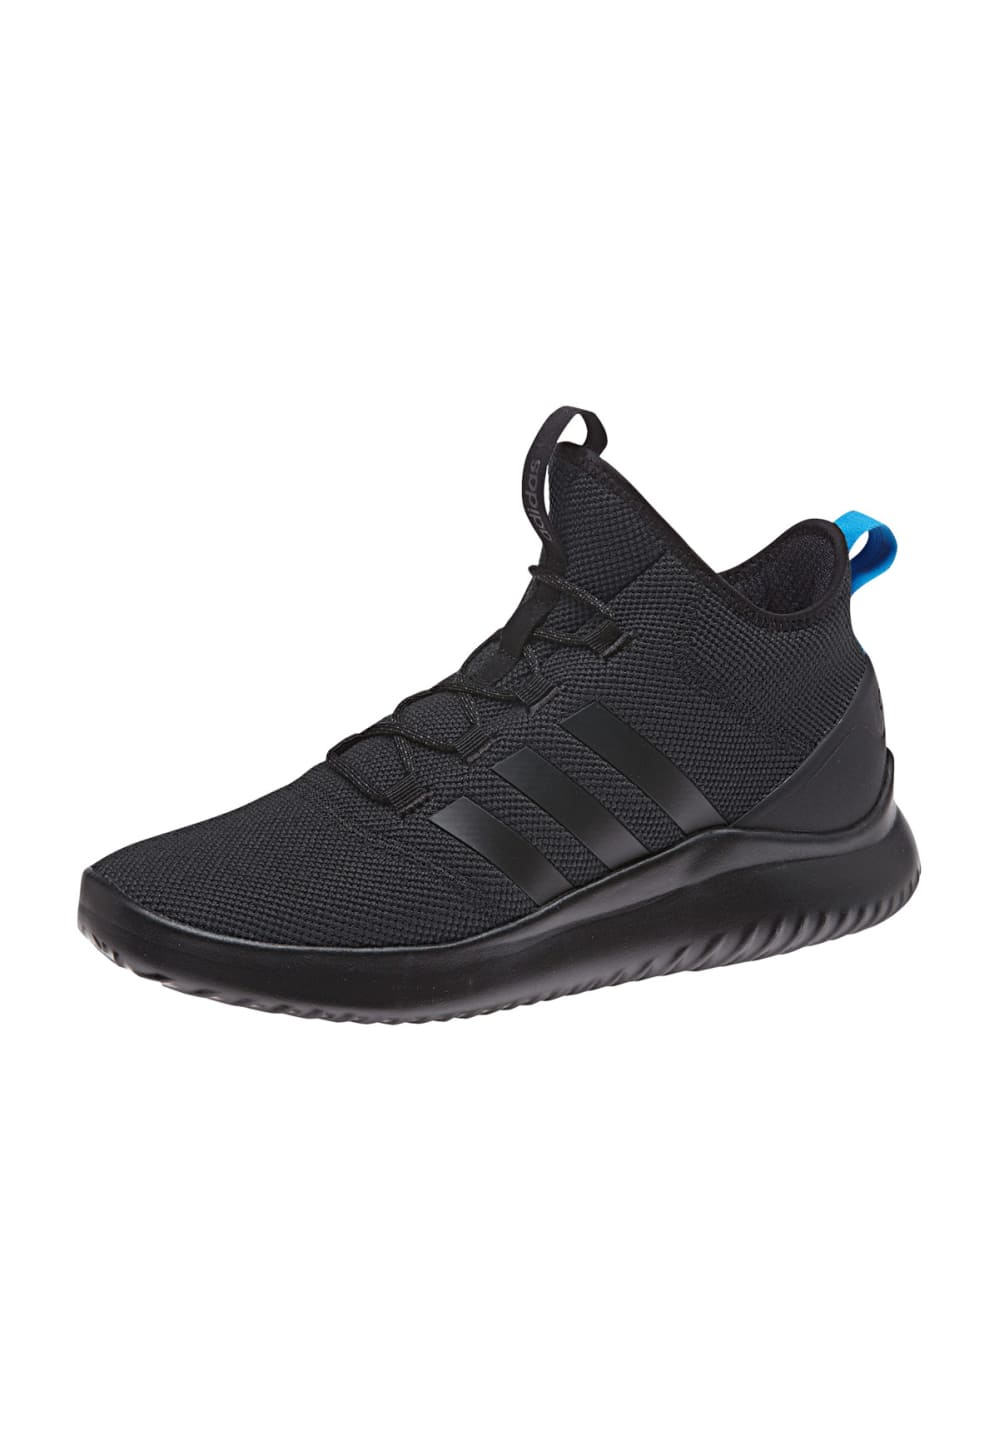 En Pour Chaussures Bball Homme Noir Sports Adidas Ultimate Neo Cf Salle Yfb7y6gv